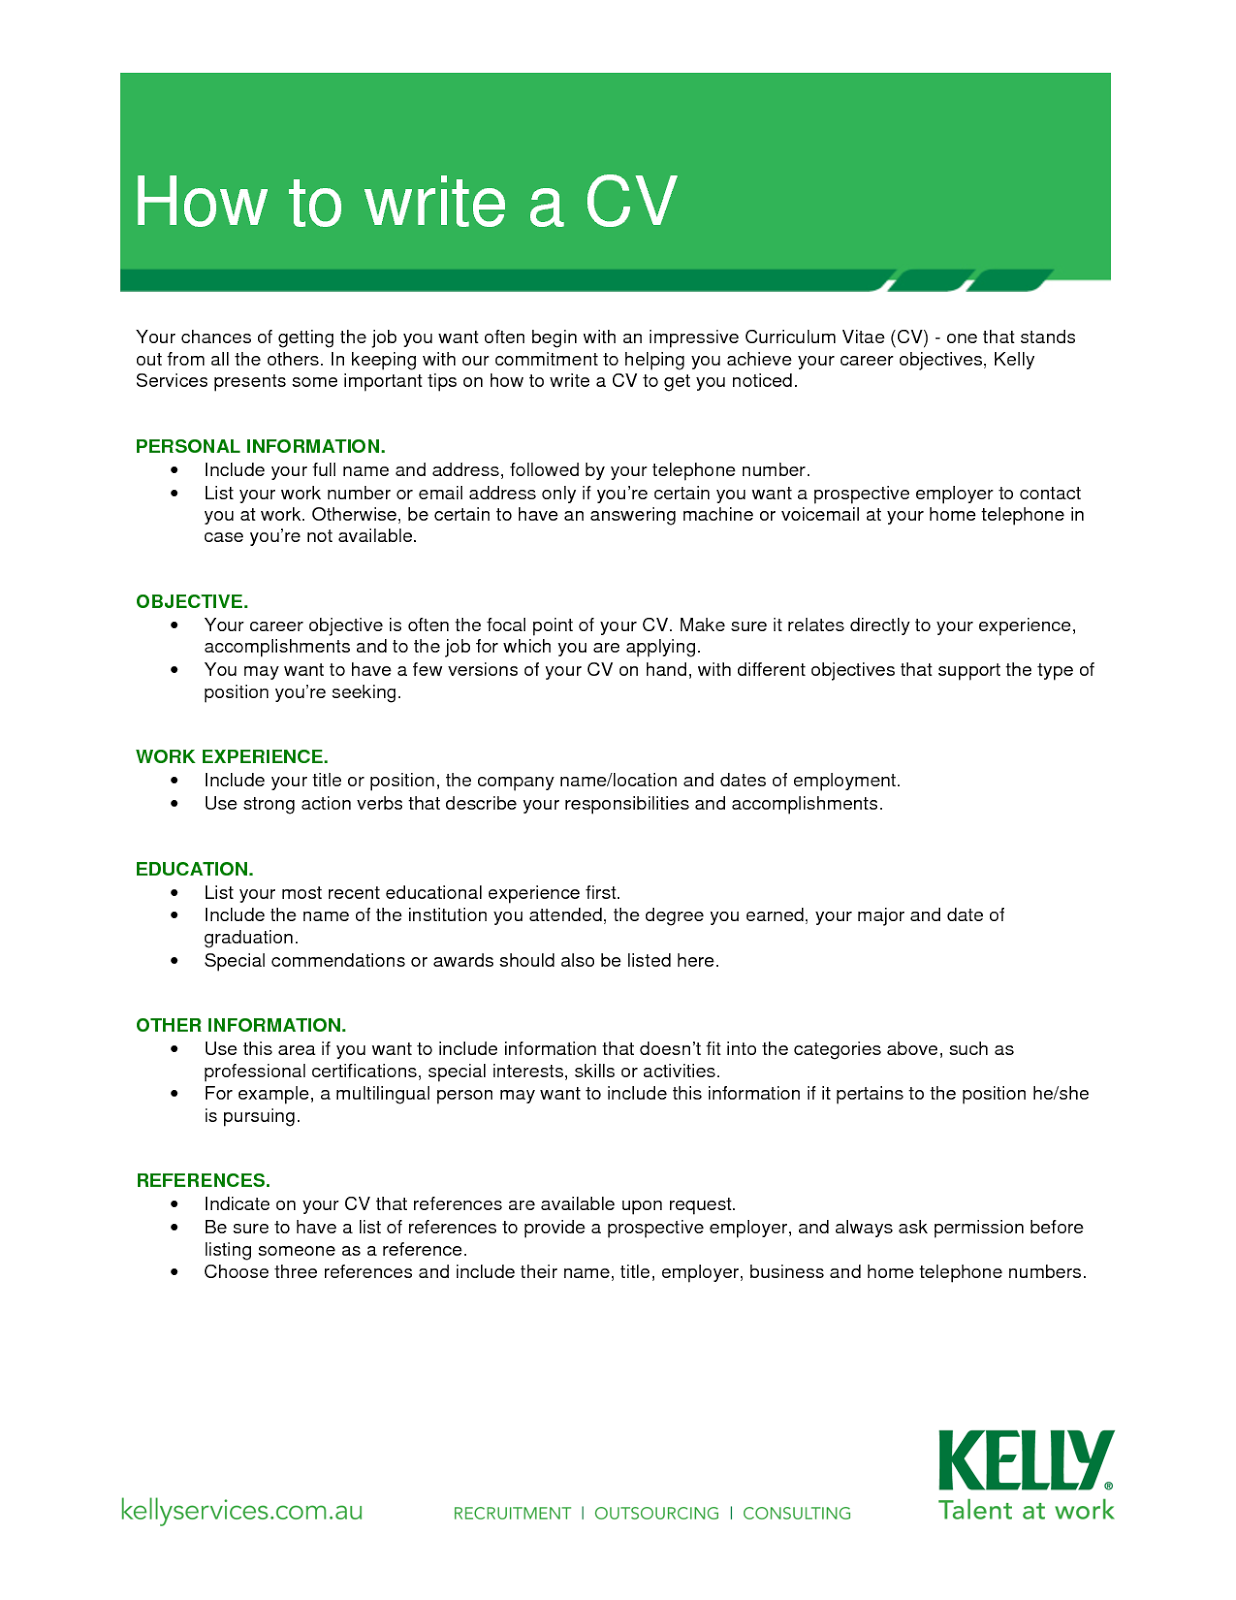 Curriculum vitae how to write a